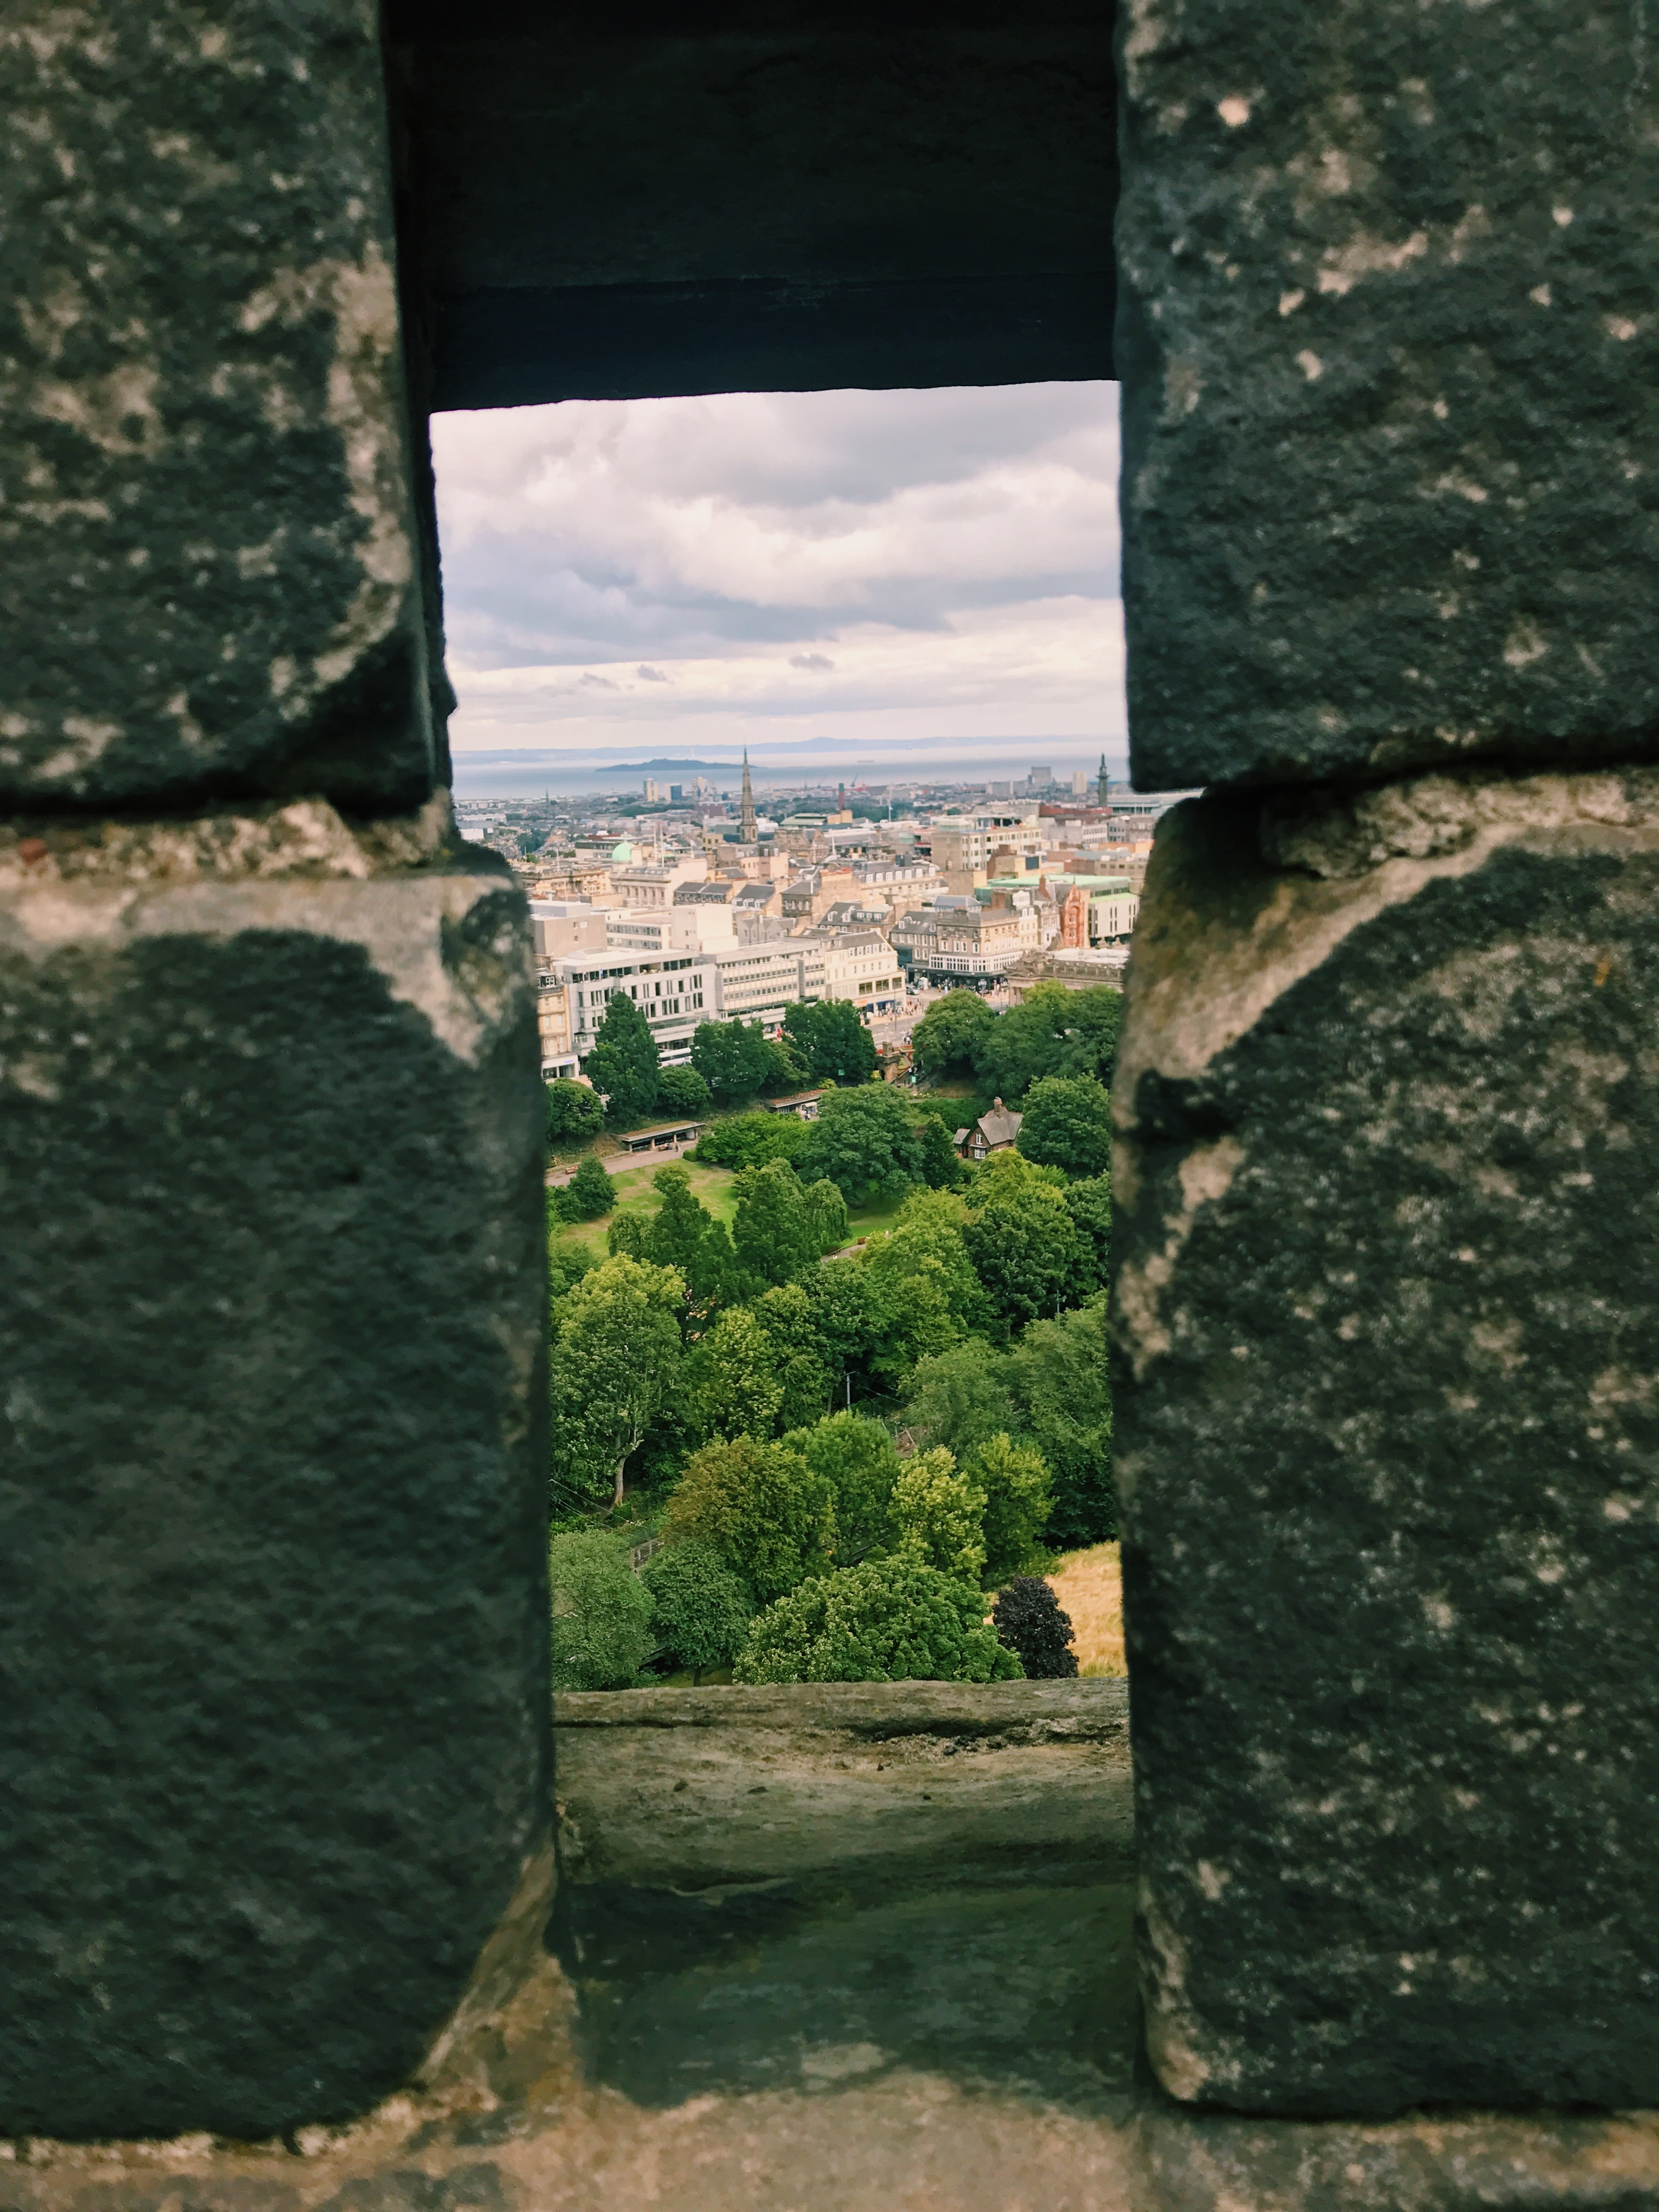 Outlook from Edinburgh Castle